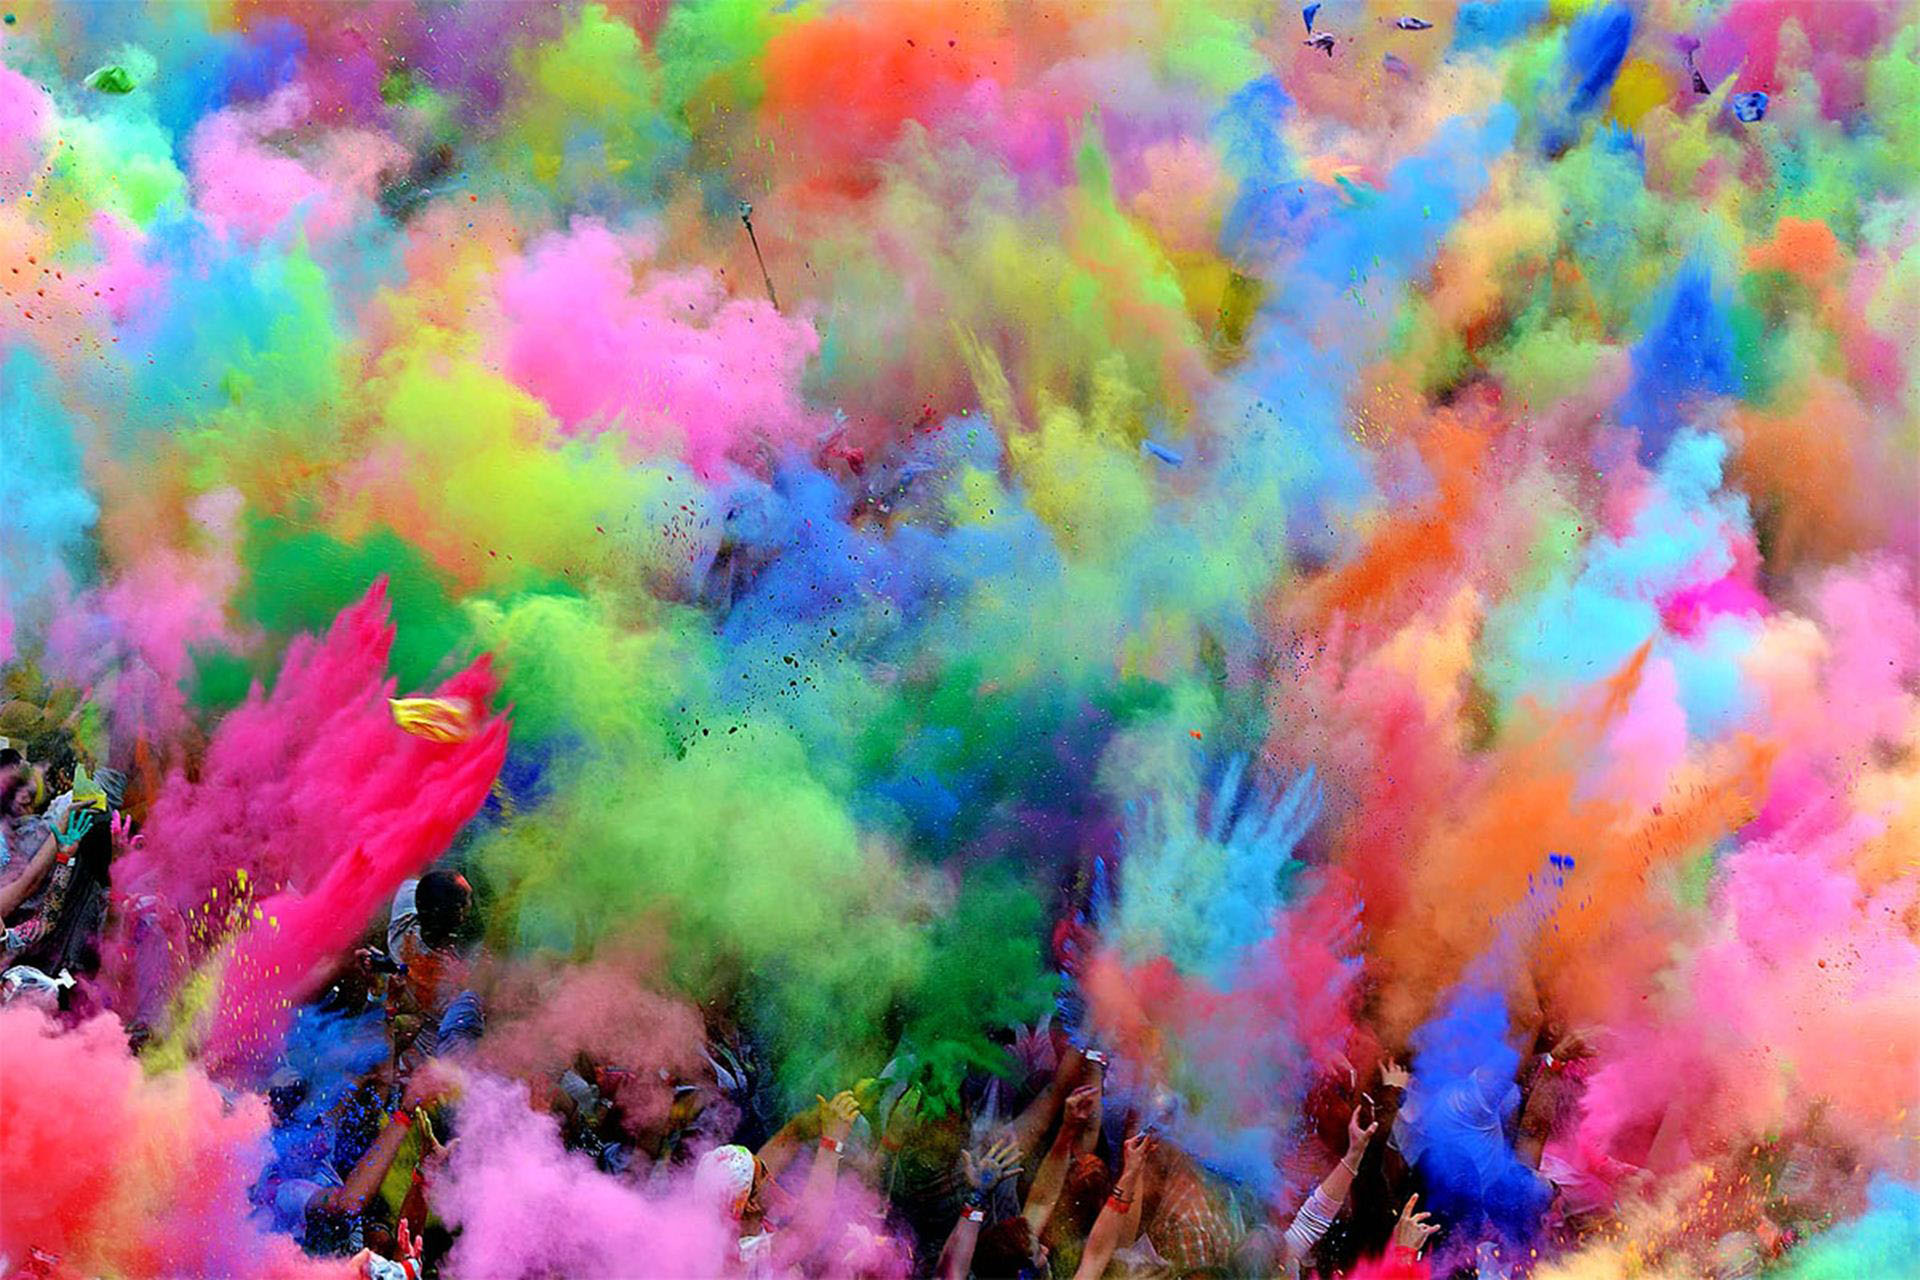 Colorful atmosphere in holi festival with different 1920x1280